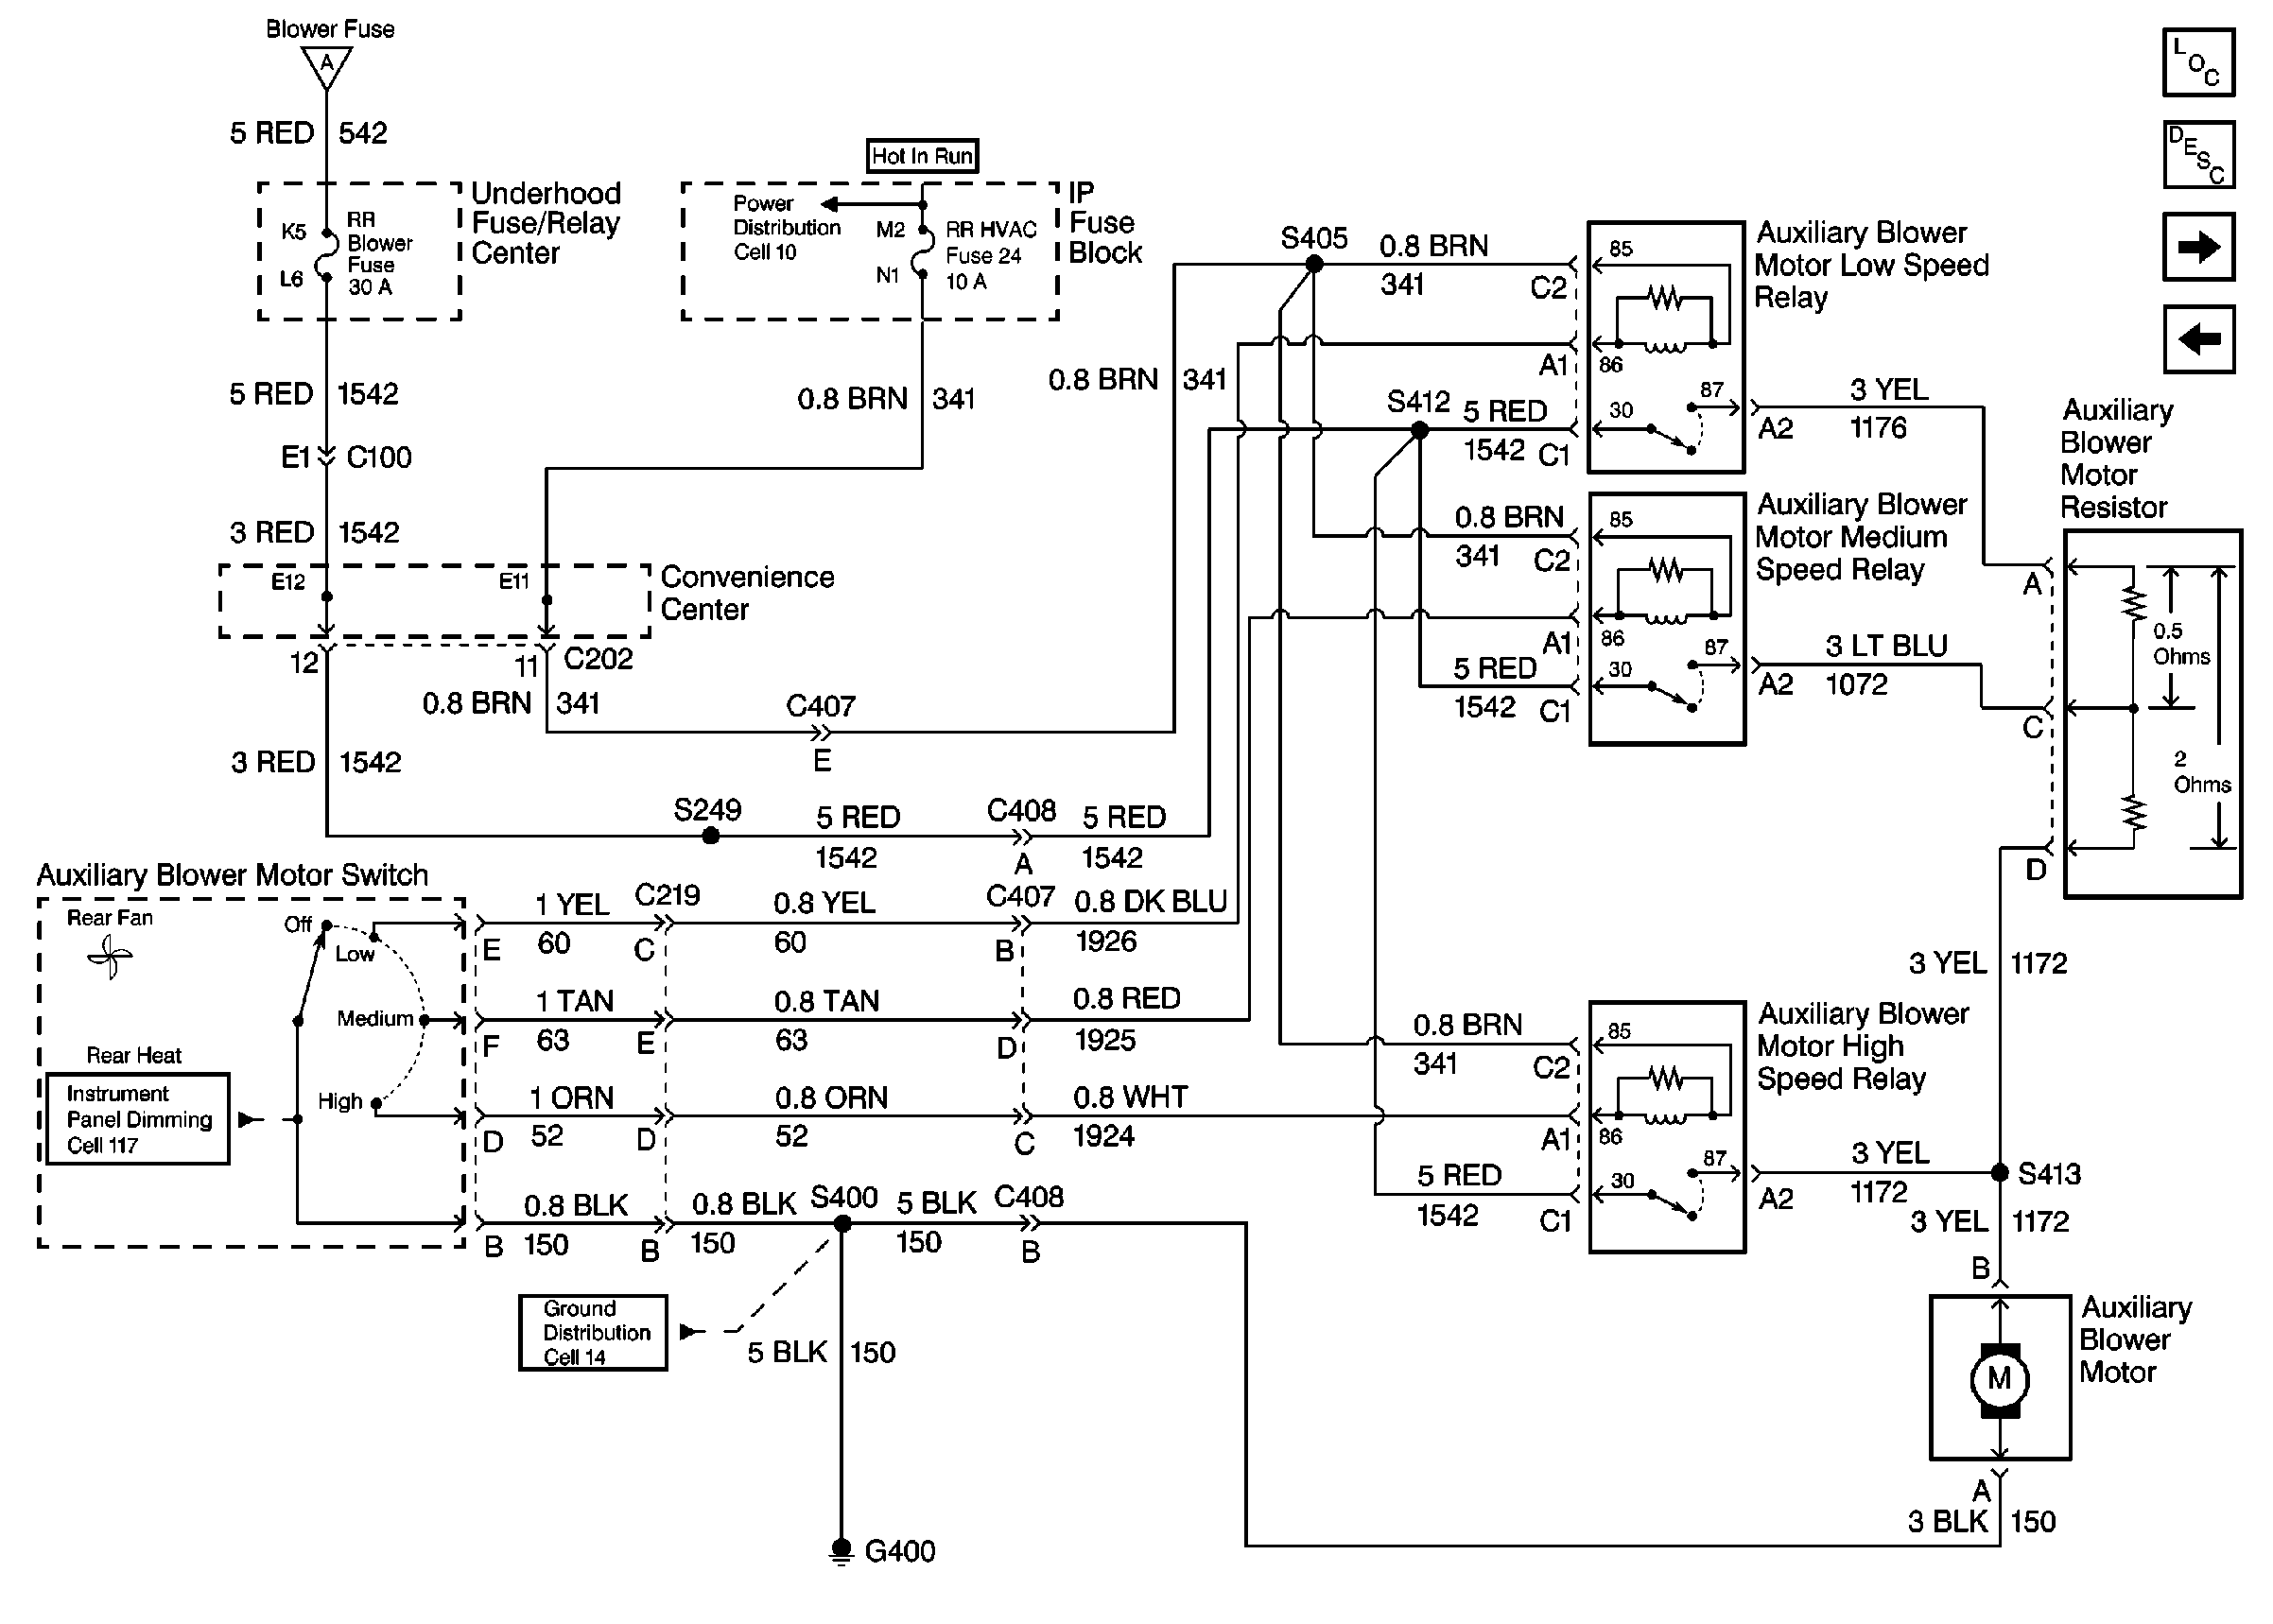 chevy express 3500 wiring diagram fuse sswNSNp chevrolet silverado k1500 i need a wiring diagram of the cruise  at eliteediting.co